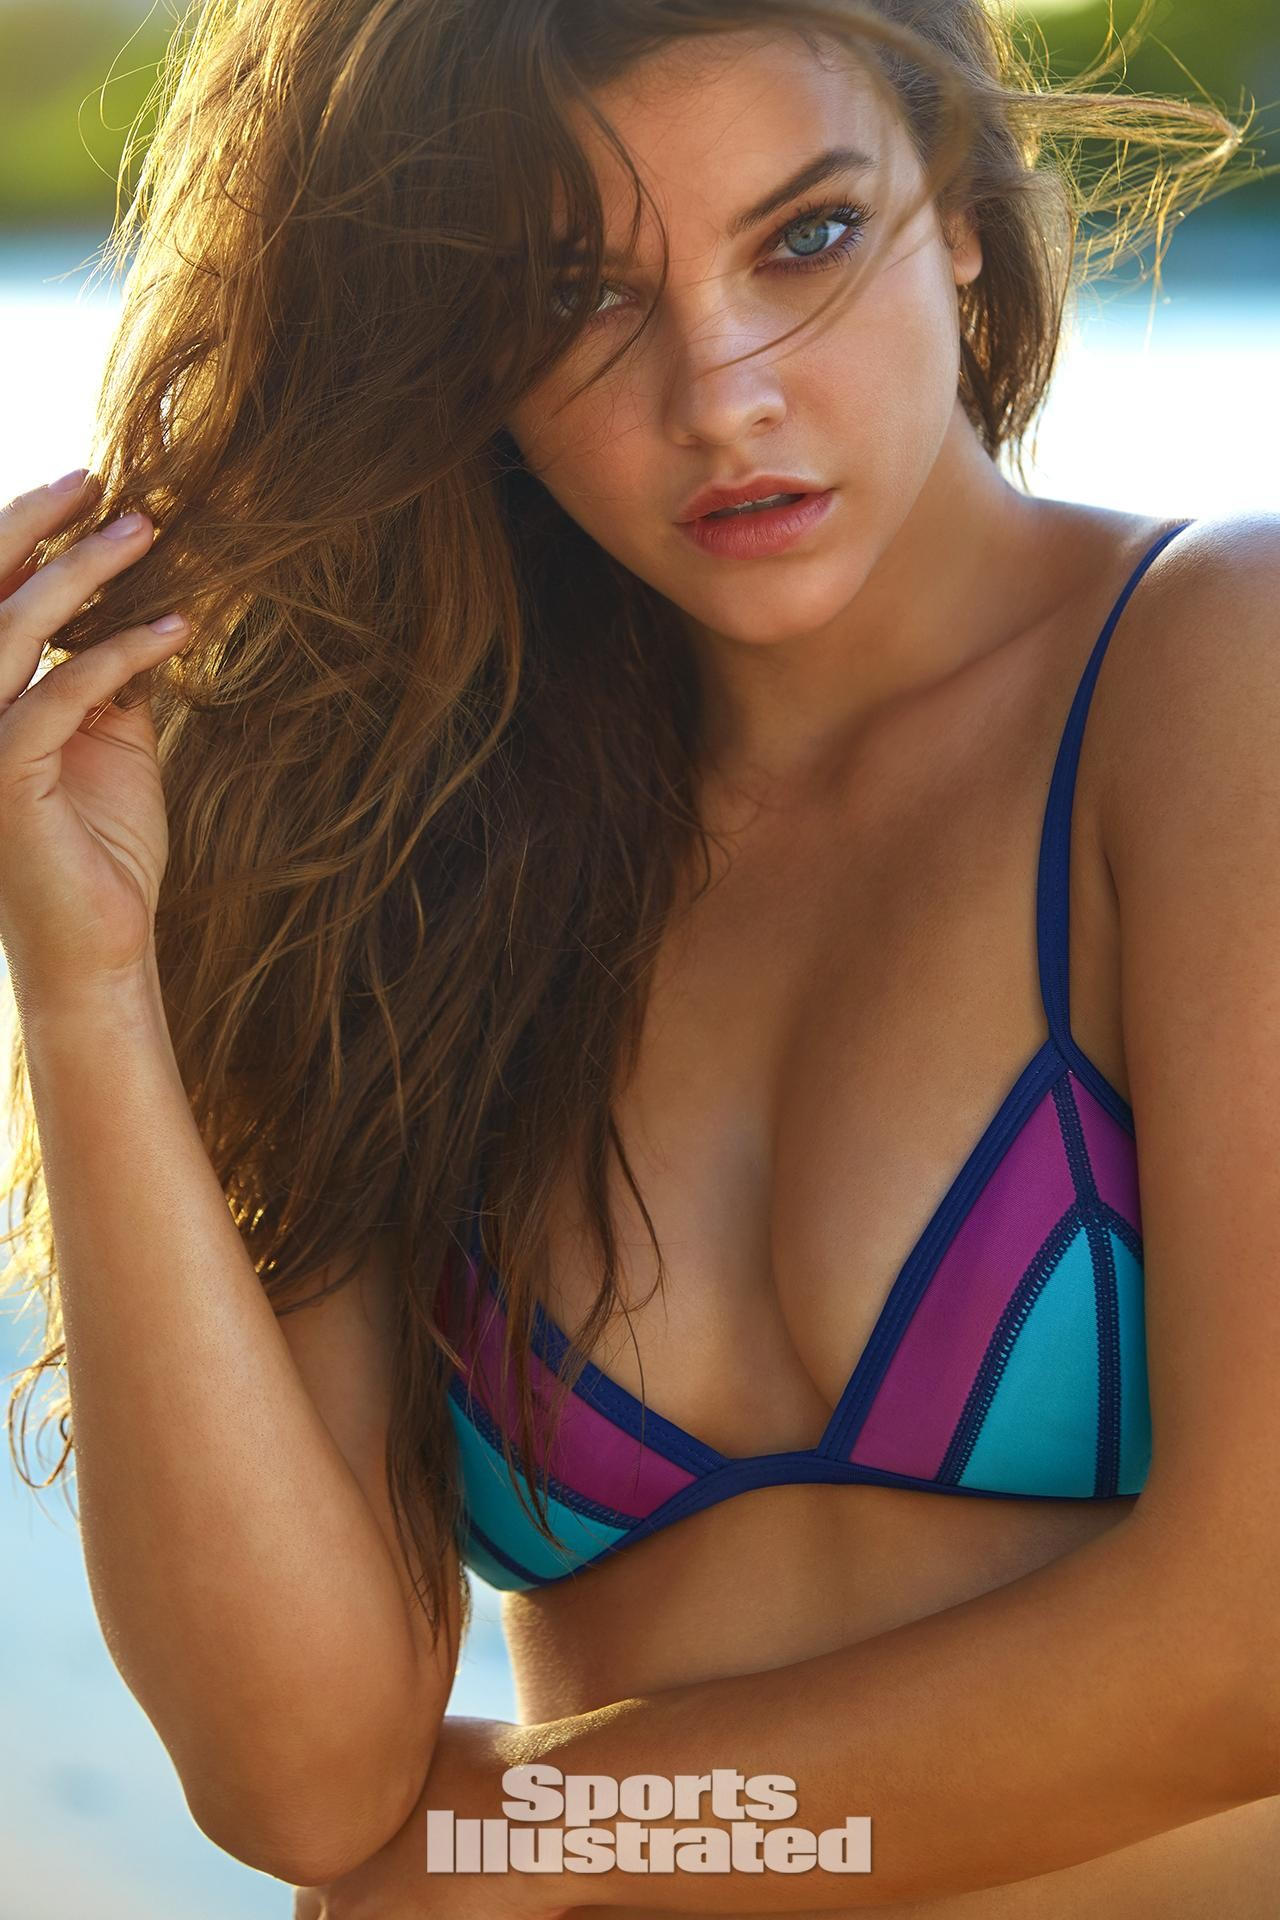 daa20c0920e6 1280x1920 Barbara Palvin was photographed by James Macari in Turks &  Caicos. Swimsuit by Duskii